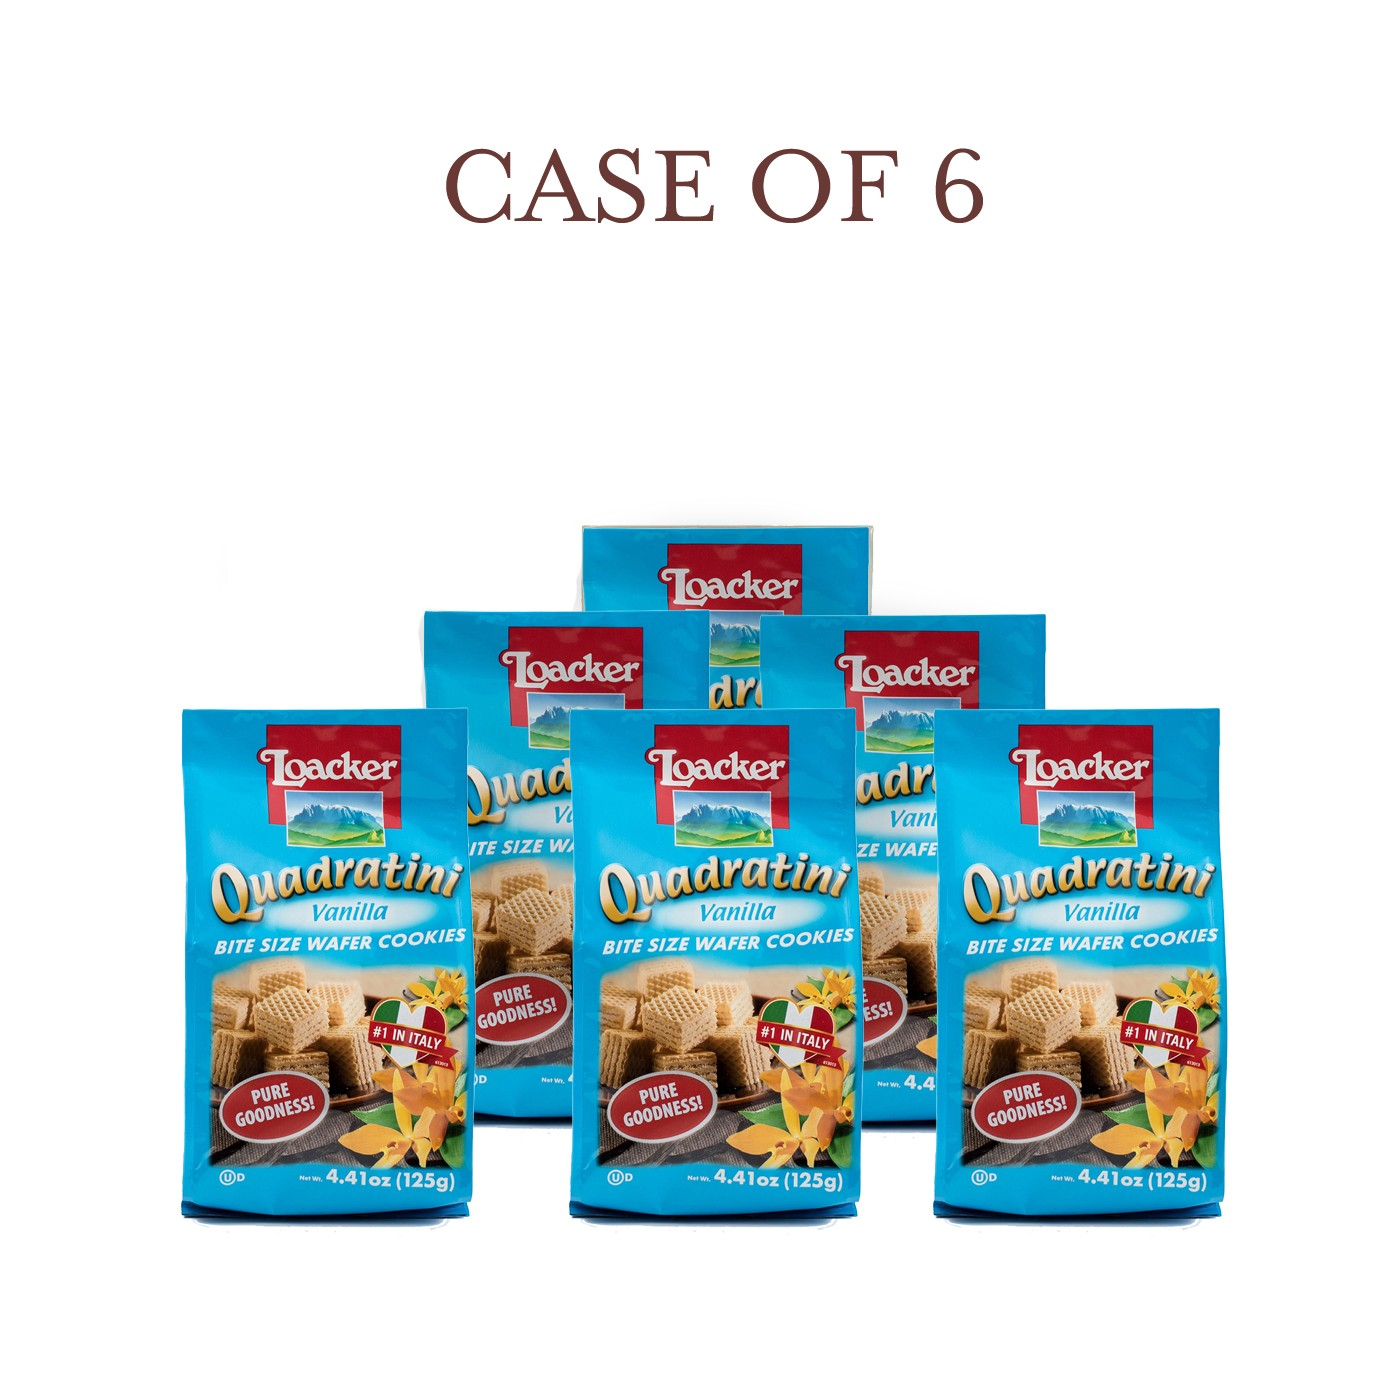 Vanilla Quadratini - Case of 6